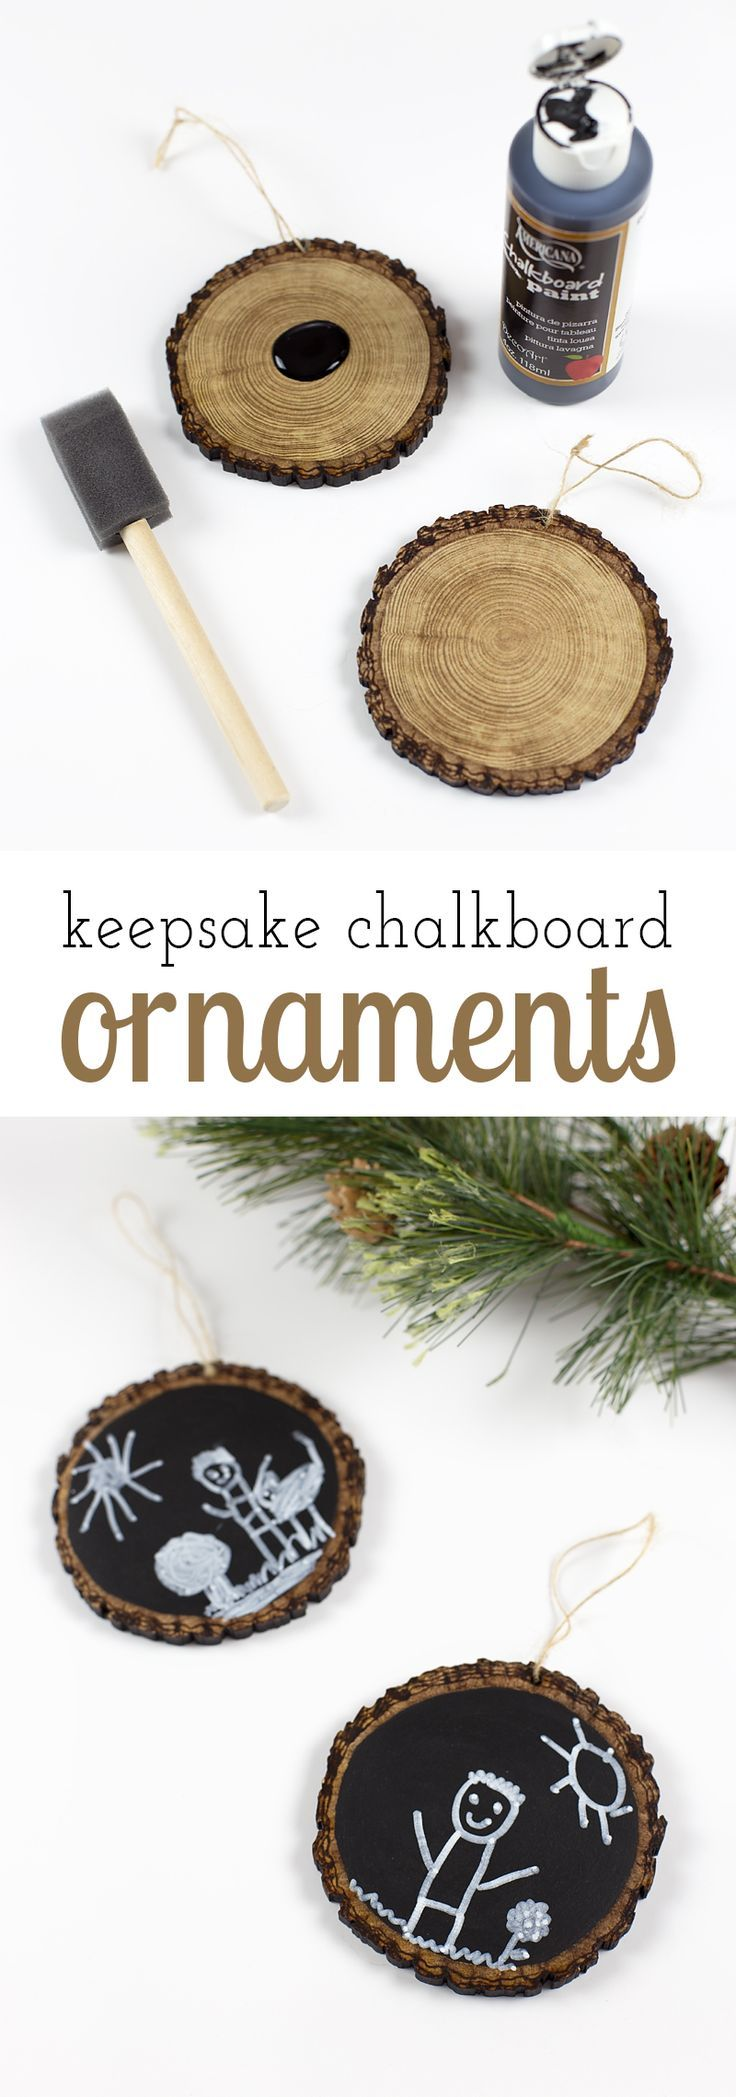 Easy Keepsake Chalkboard Ornaments, guaranteed to make your heart swoon every Christmas. An Christmas craft for kids to make. via @HTTP://www.pinterest.com/fireflymudpie/